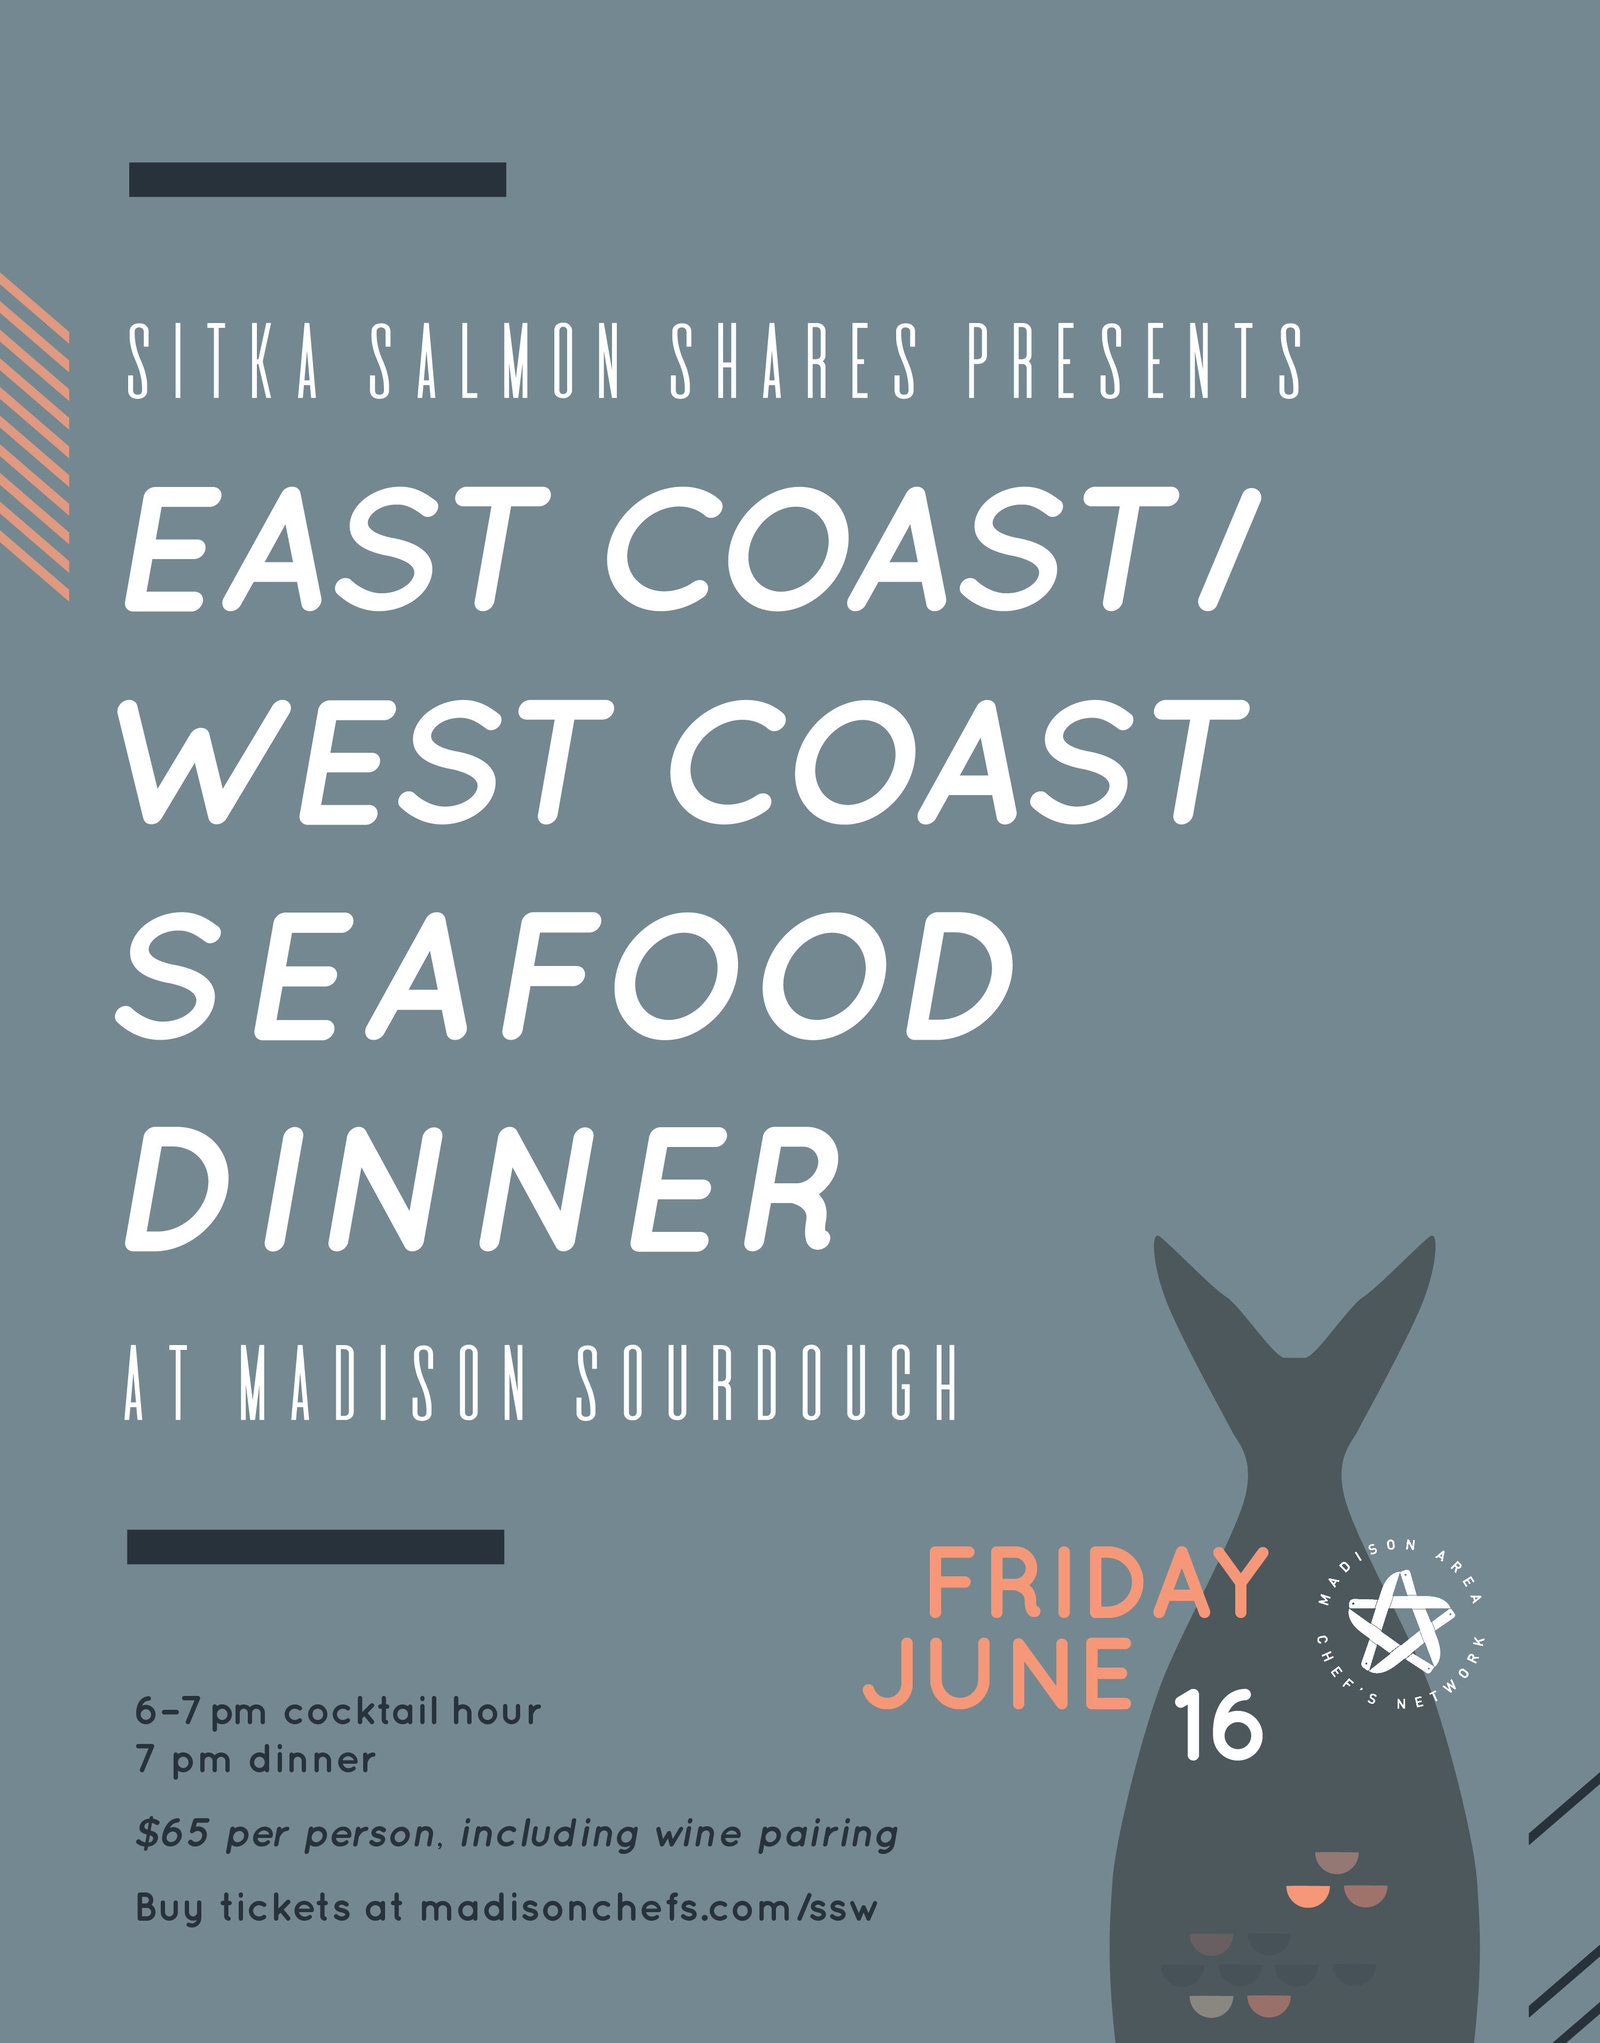 Event branding and collateral for Madison Sustainable Seafood Week 2017 by Christie Evenson Design Co.